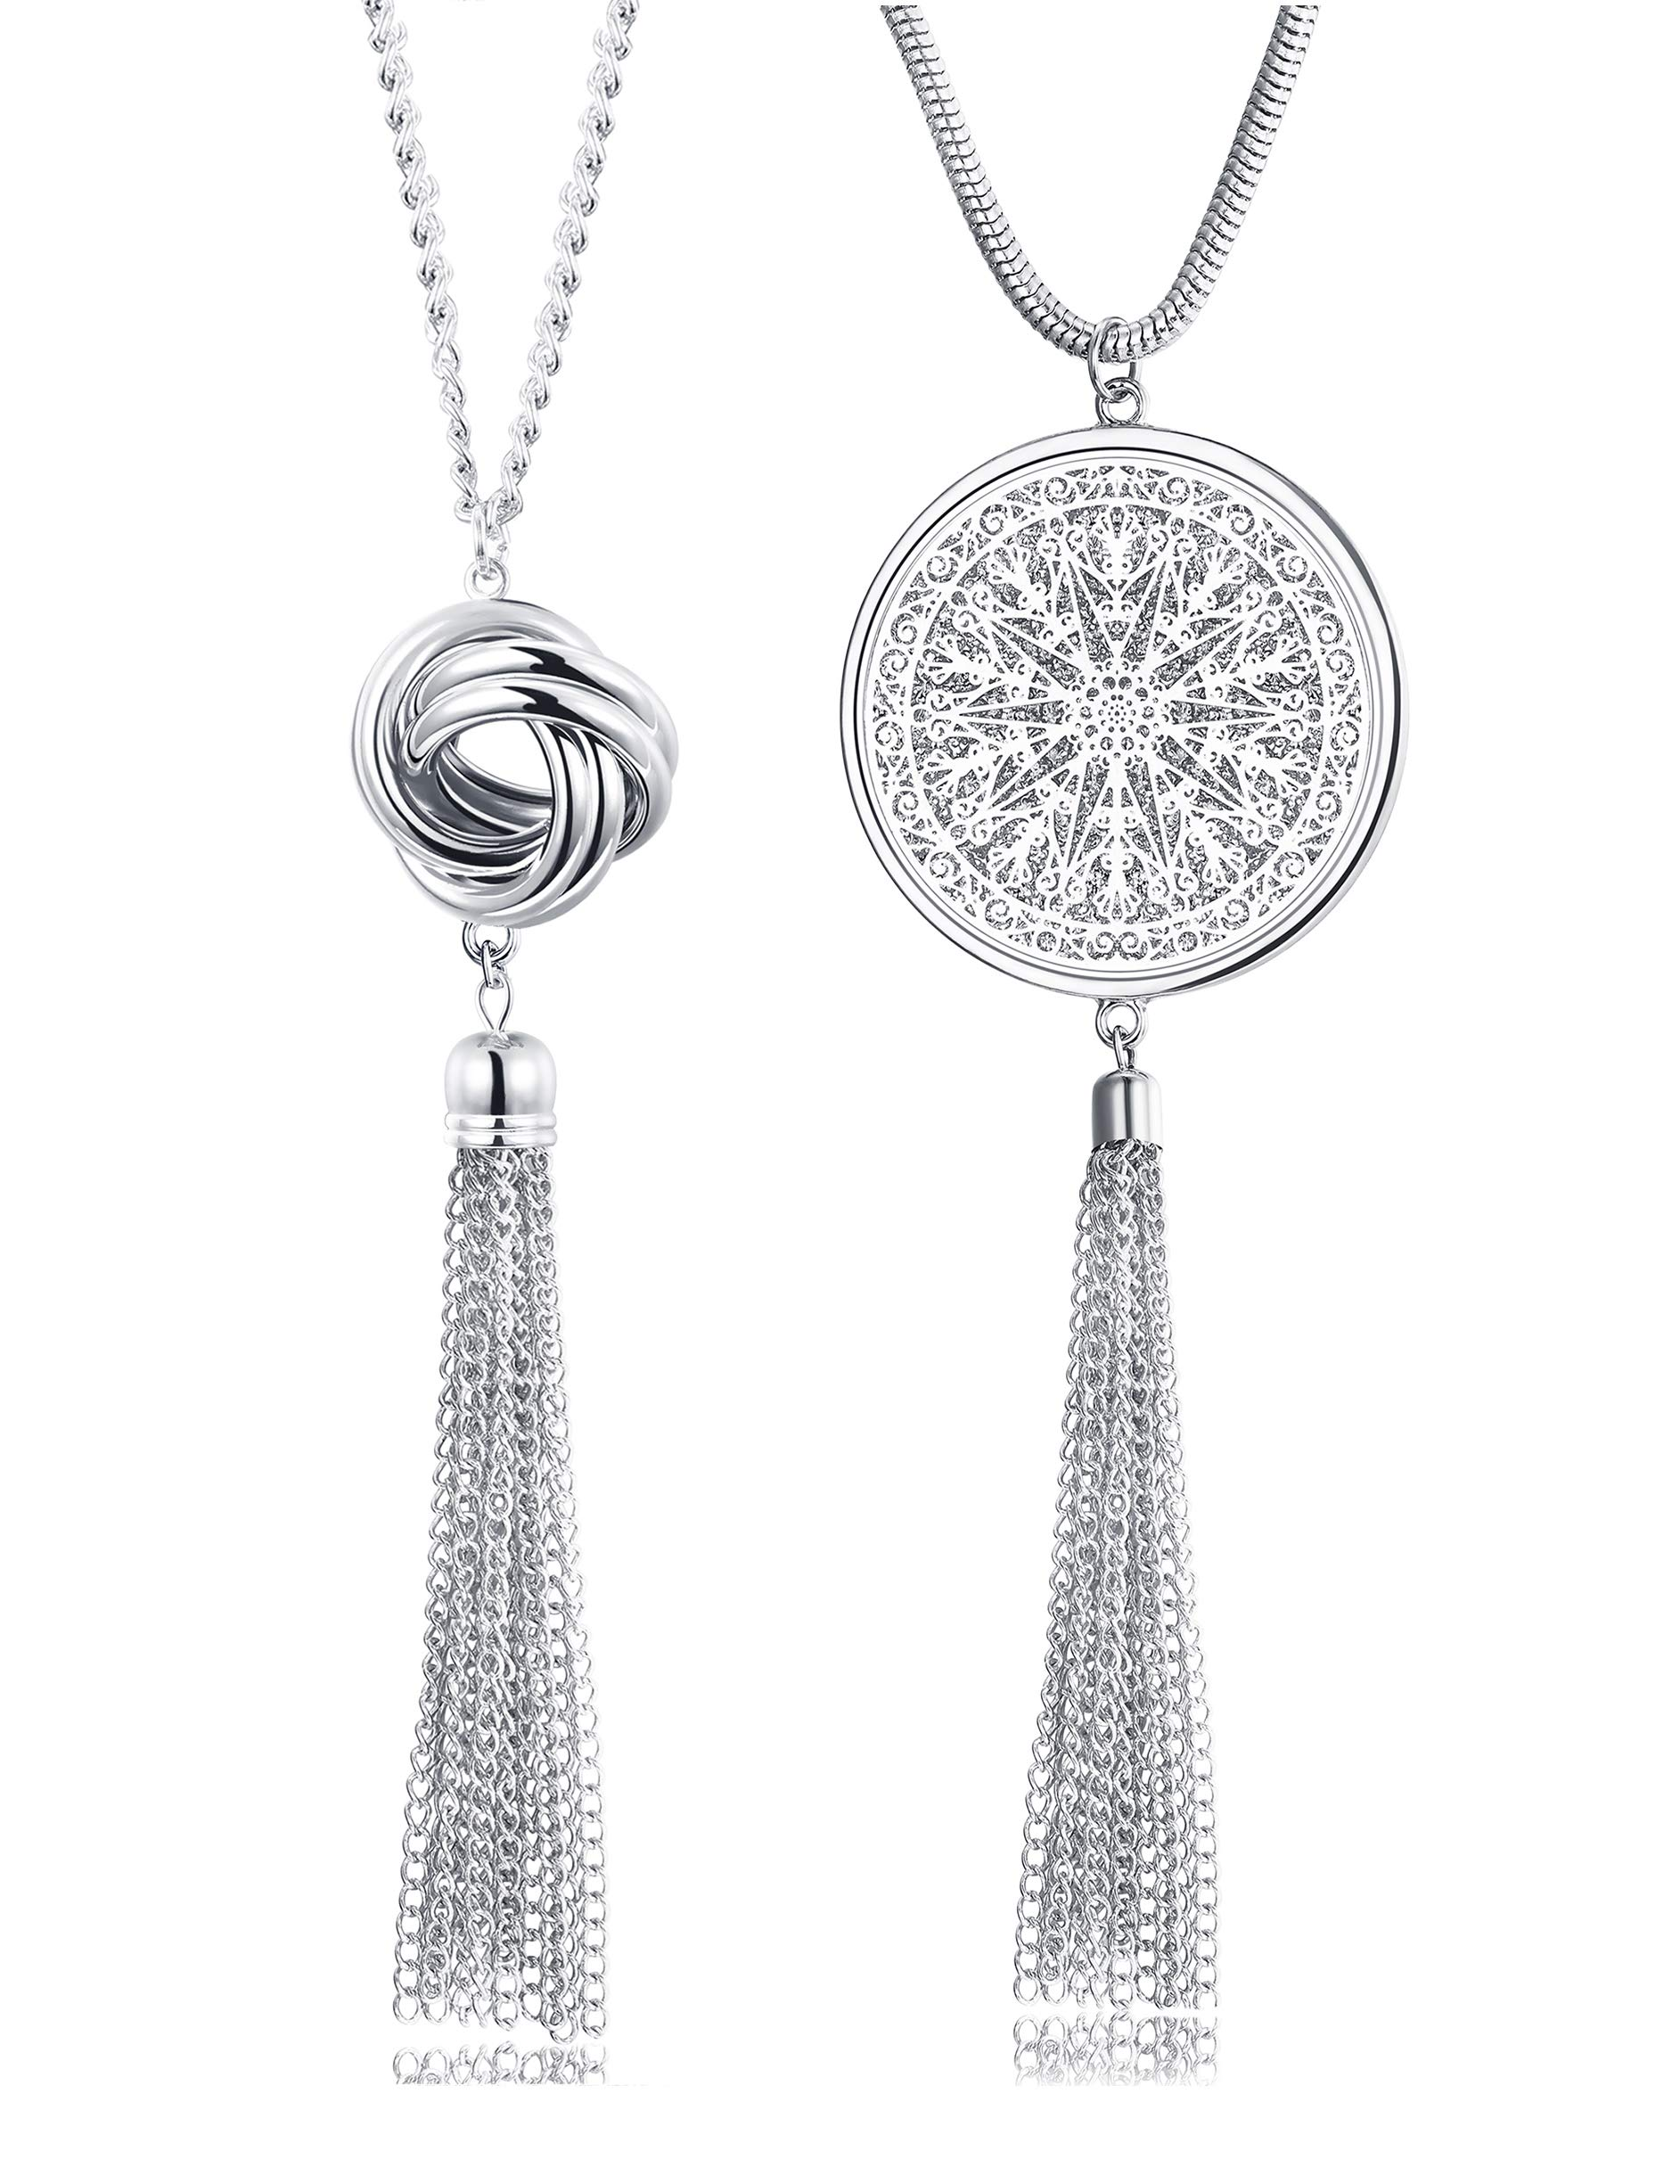 FUNRUN JEWELRY 2PCS Long Pendant Necklaces for Woman Knot Disk Circle Tassel Y Necklaces Set (2PCS Silver Tone) by FUNRUN JEWELRY